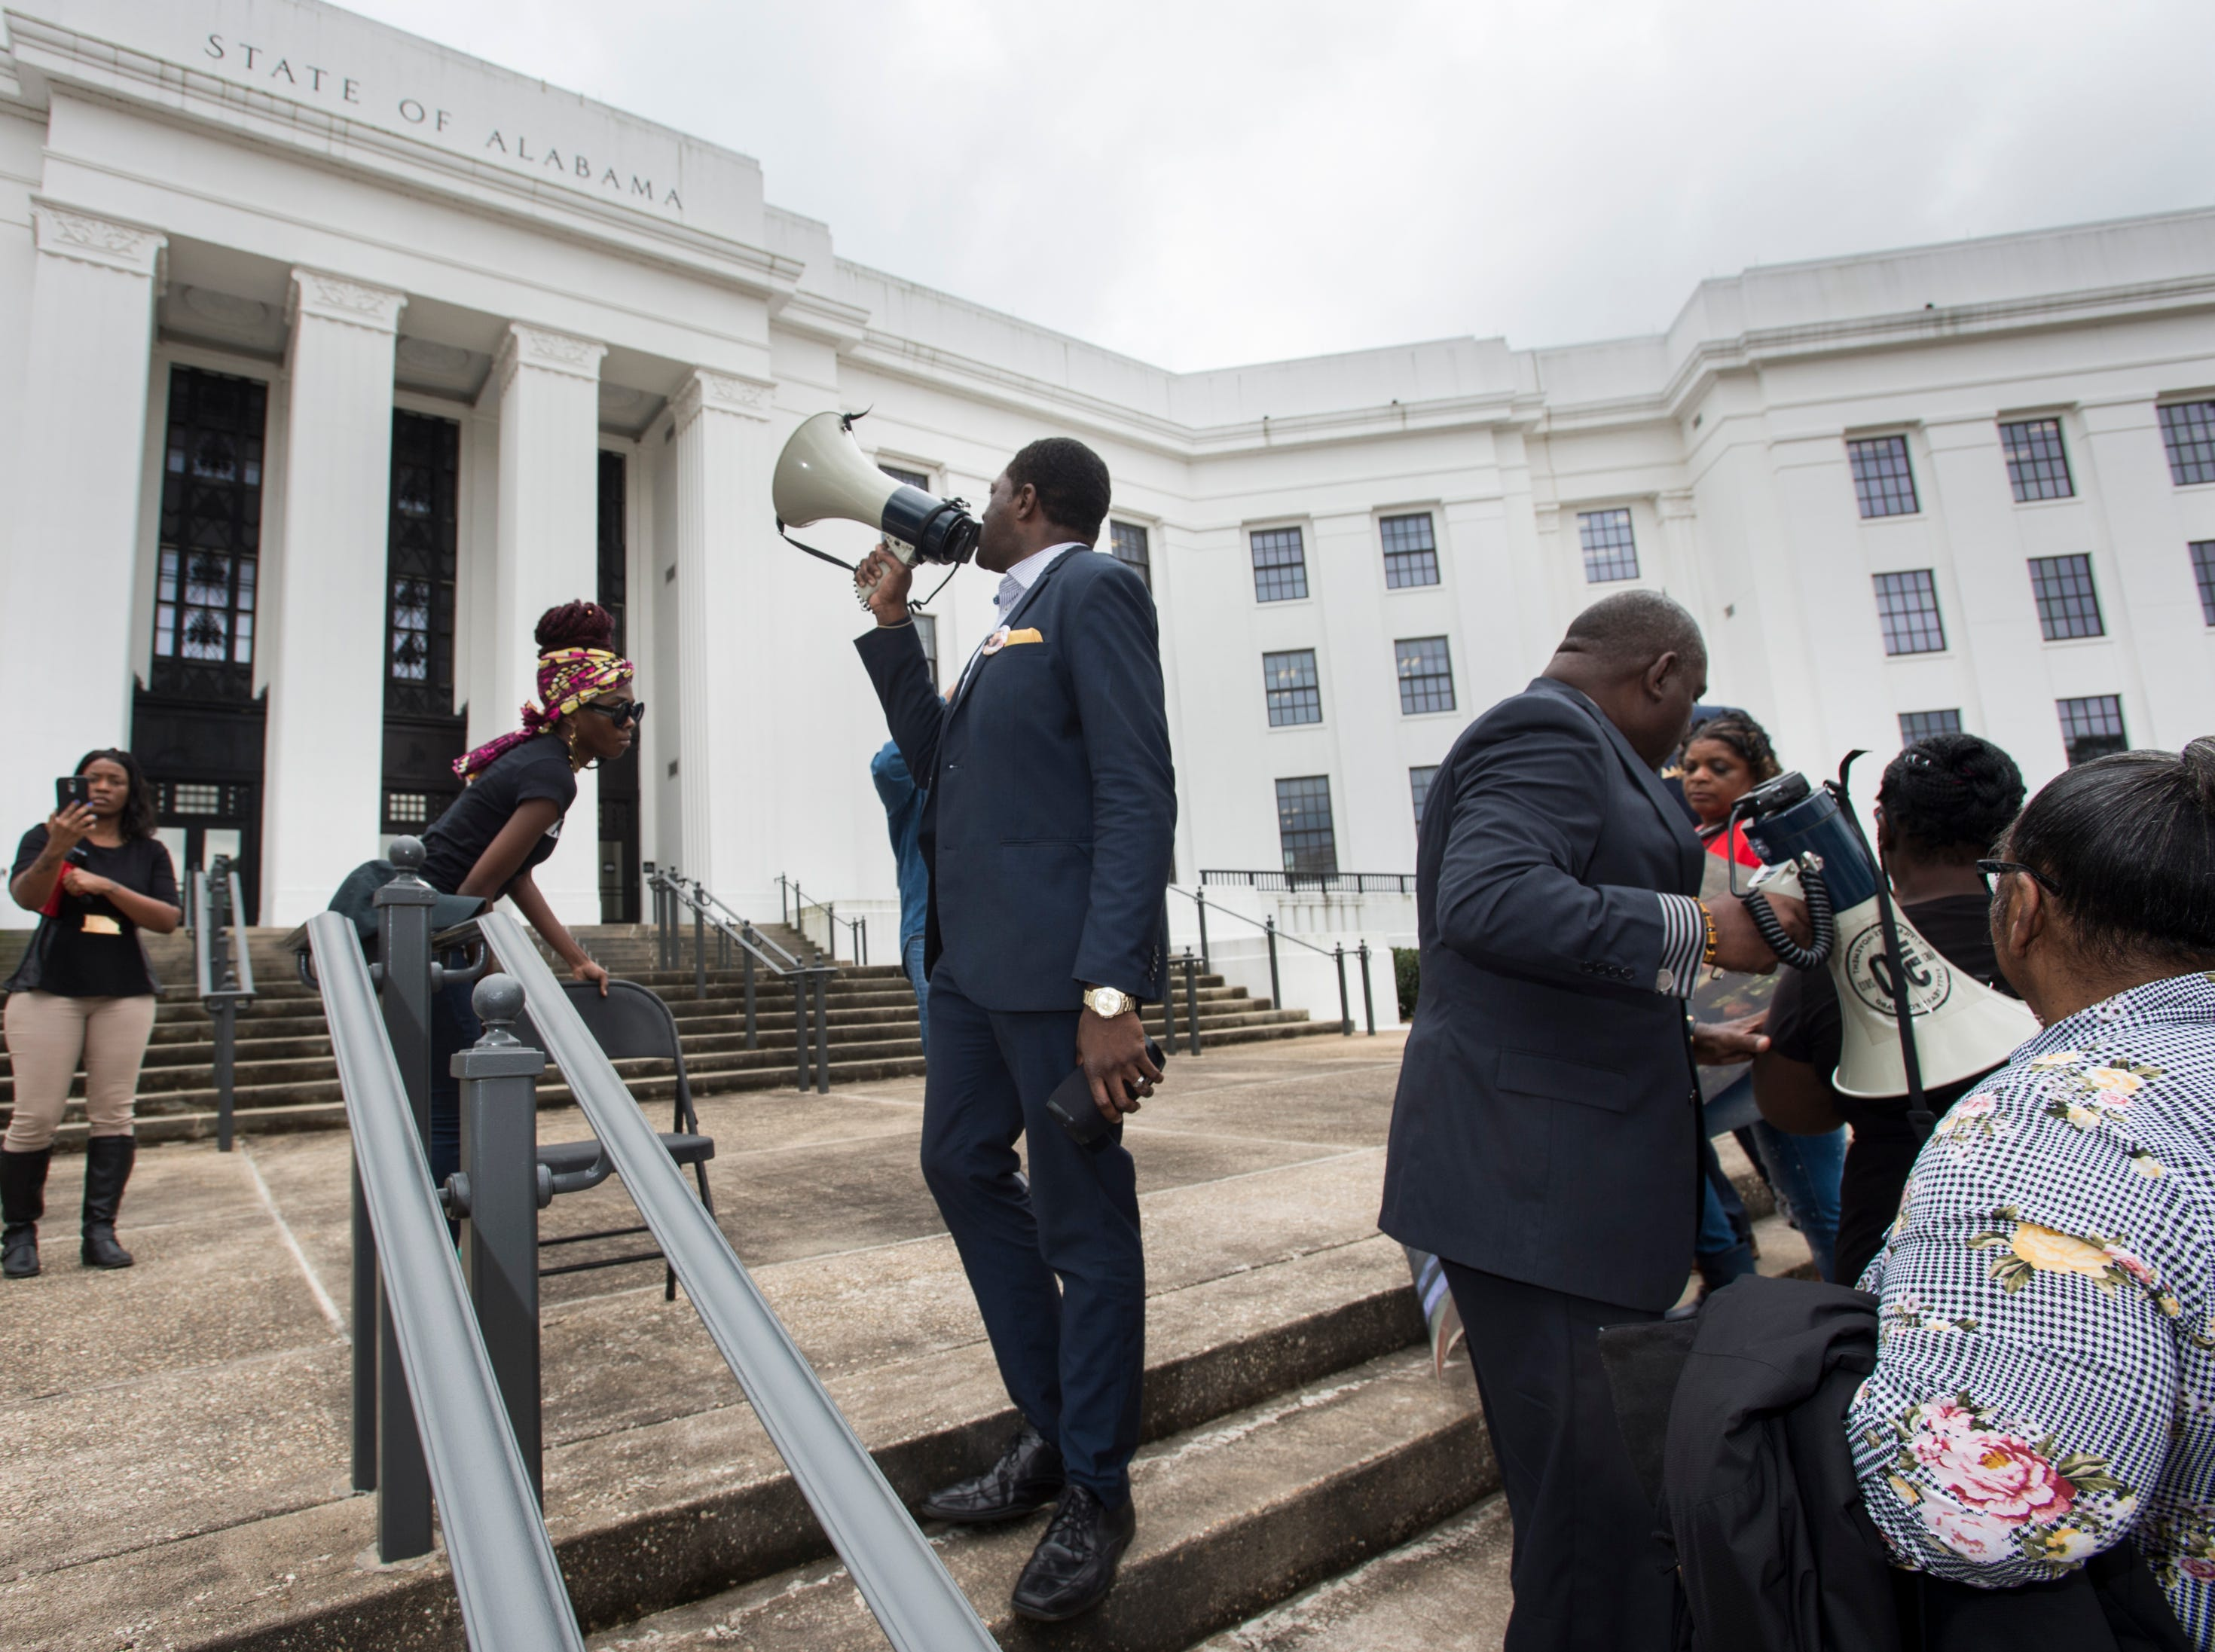 Protestors join EJ Bradford's family as they march around the Alabama Attorney General's office during a protest in Montgomery, Ala., on Wednesday, Feb. 6, 2019. EJ Bradford was shot and killed by police Nov. 22, 2018 in a Hoover, Ala. mall. Alabama Attorney General Steve Marshall announced Tuesday there would be no charges filed against the officer involved in the shooting.